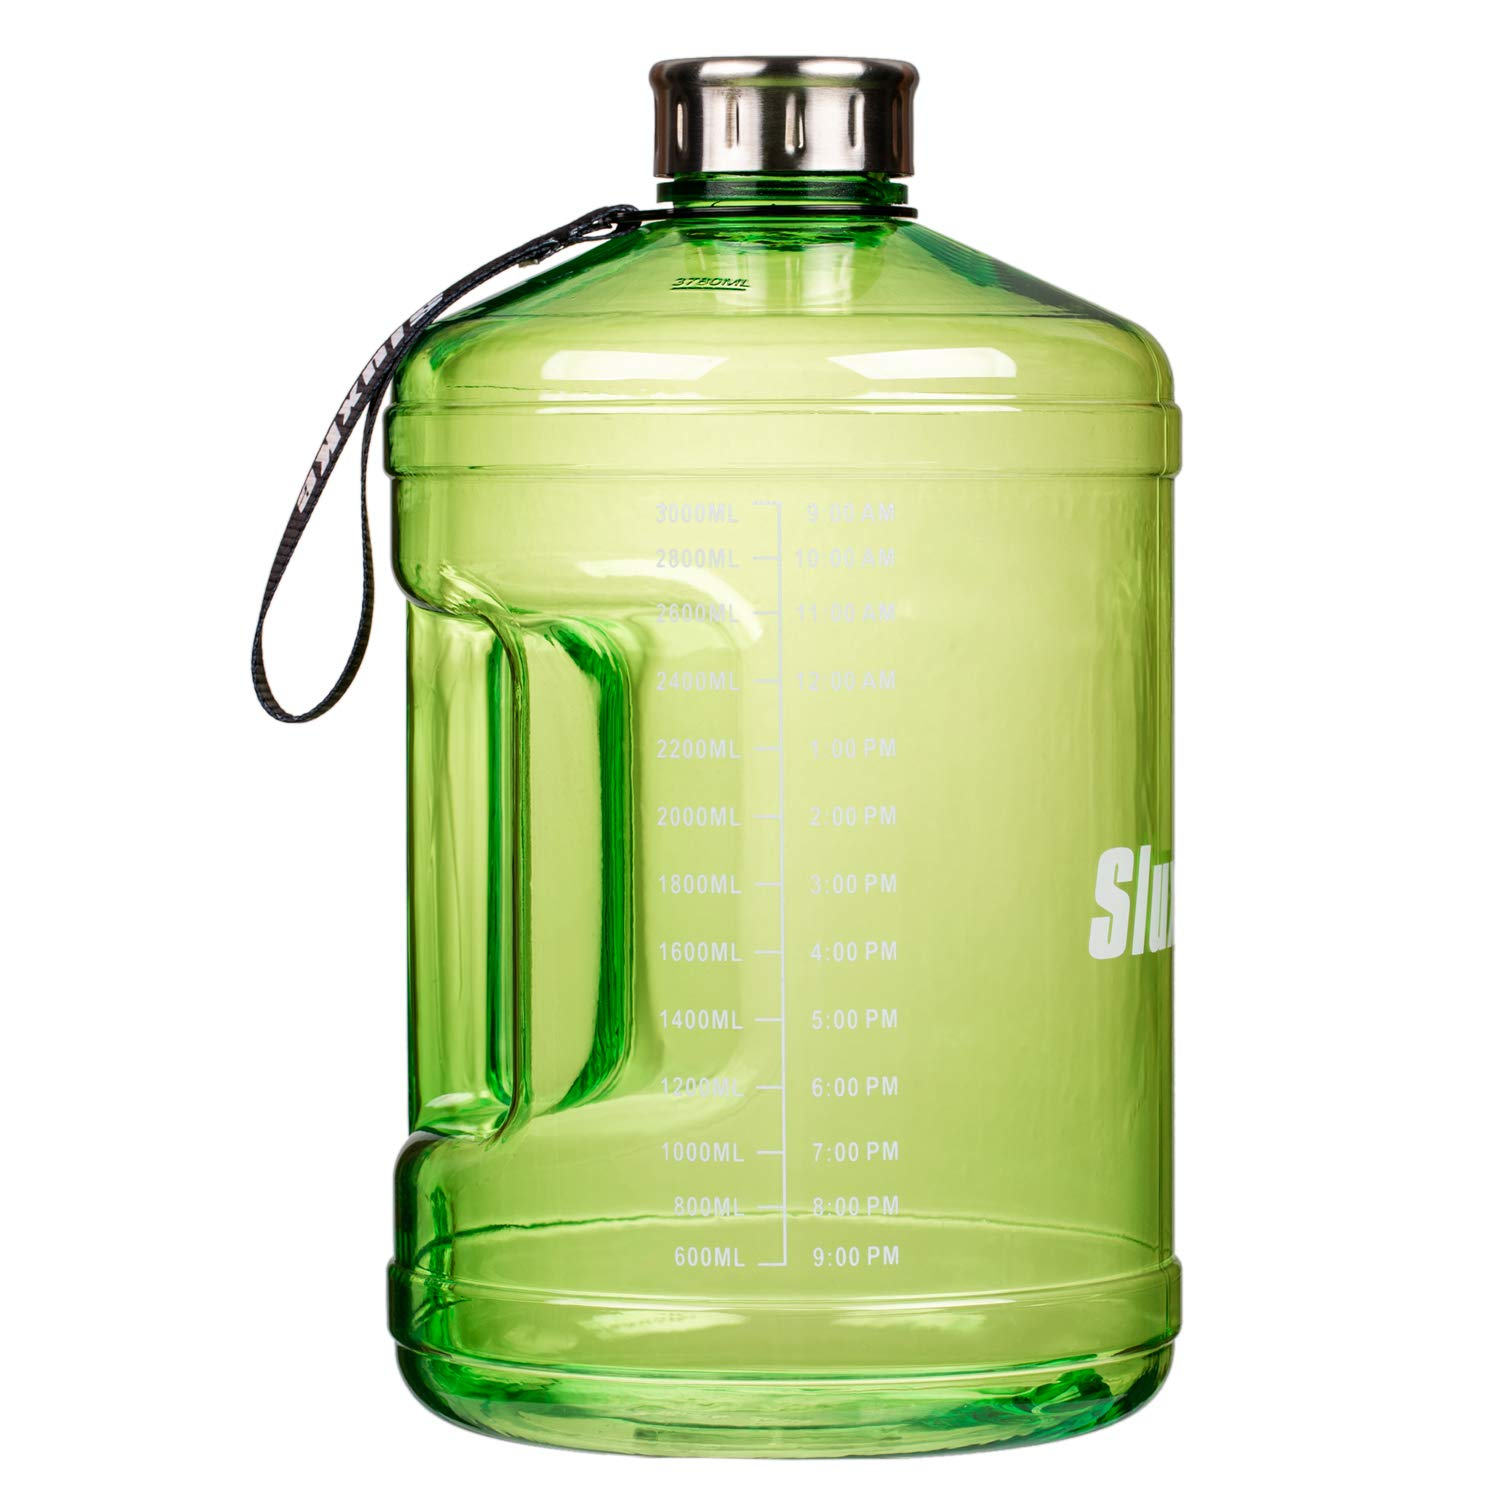 SIuxKe 1Gallon Big Water Bottle Reusable Leak-Proof Drinking Water Jug for Outdoor Camping BPA Free Plastic Sports Water Bottle with Daily Time Marked